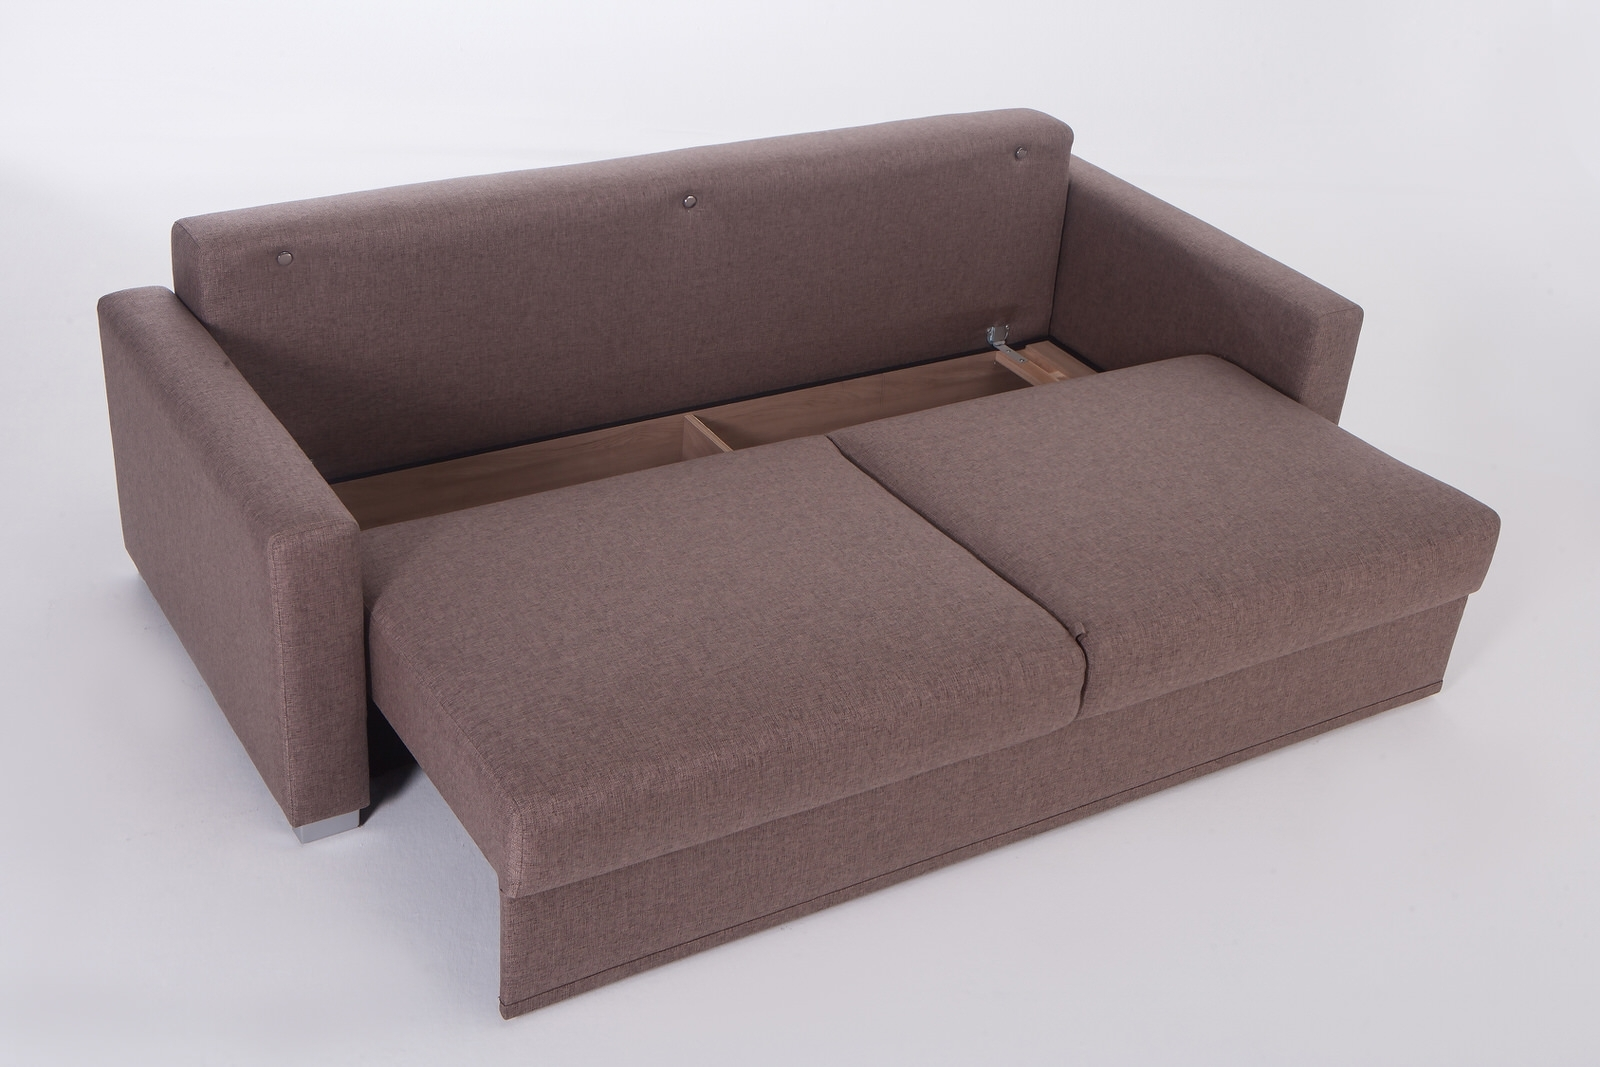 Sectional Sofa Bed With Storage — Cabinets, Beds, Sofas And Throughout Convertible Sofas (Image 5 of 10)